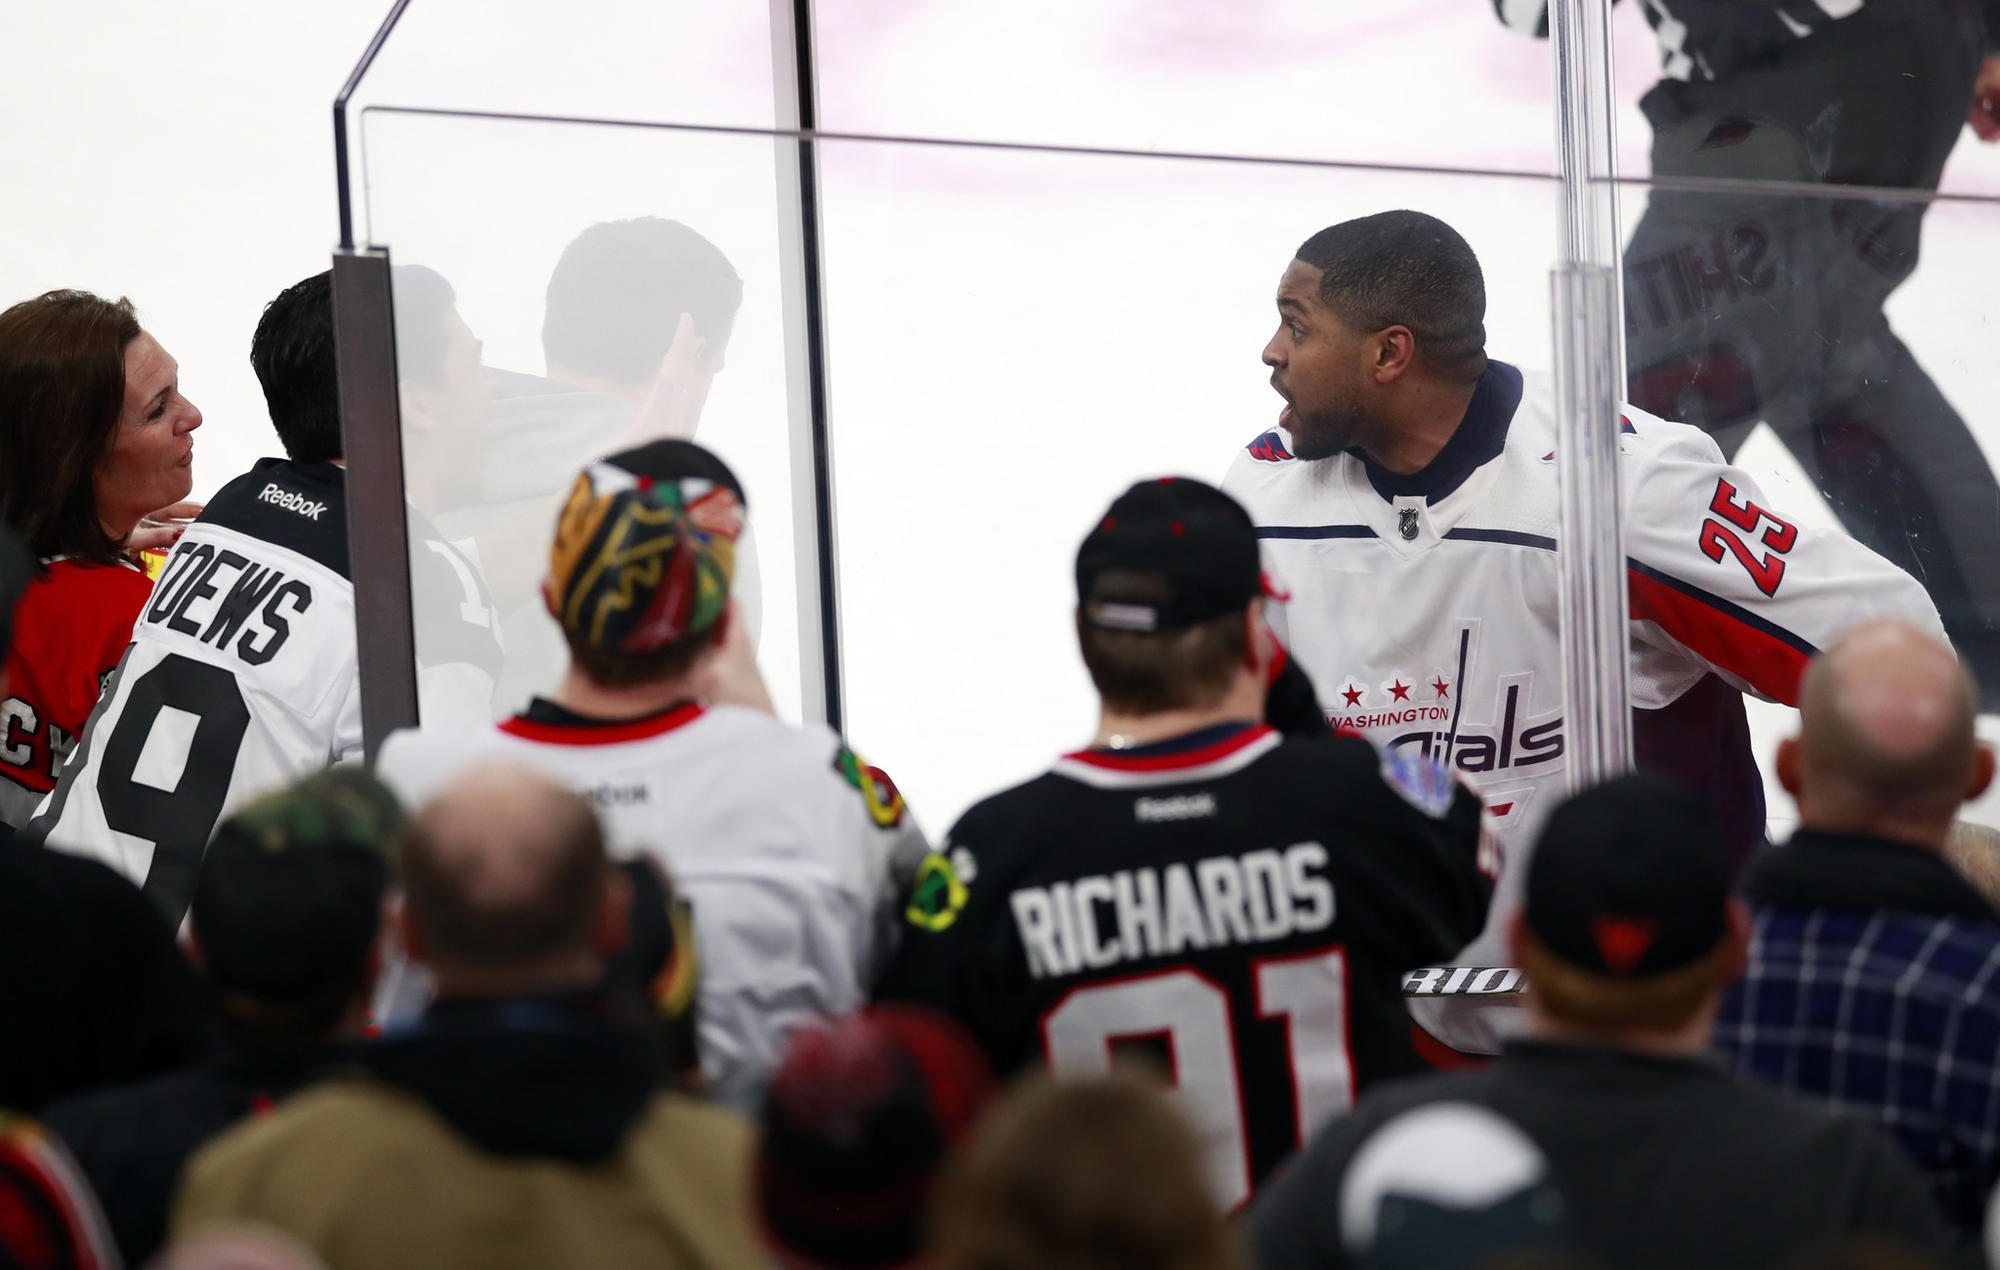 Ban the racist jerks who embarrassed the Blackhawks and Chicago from all future sporting events